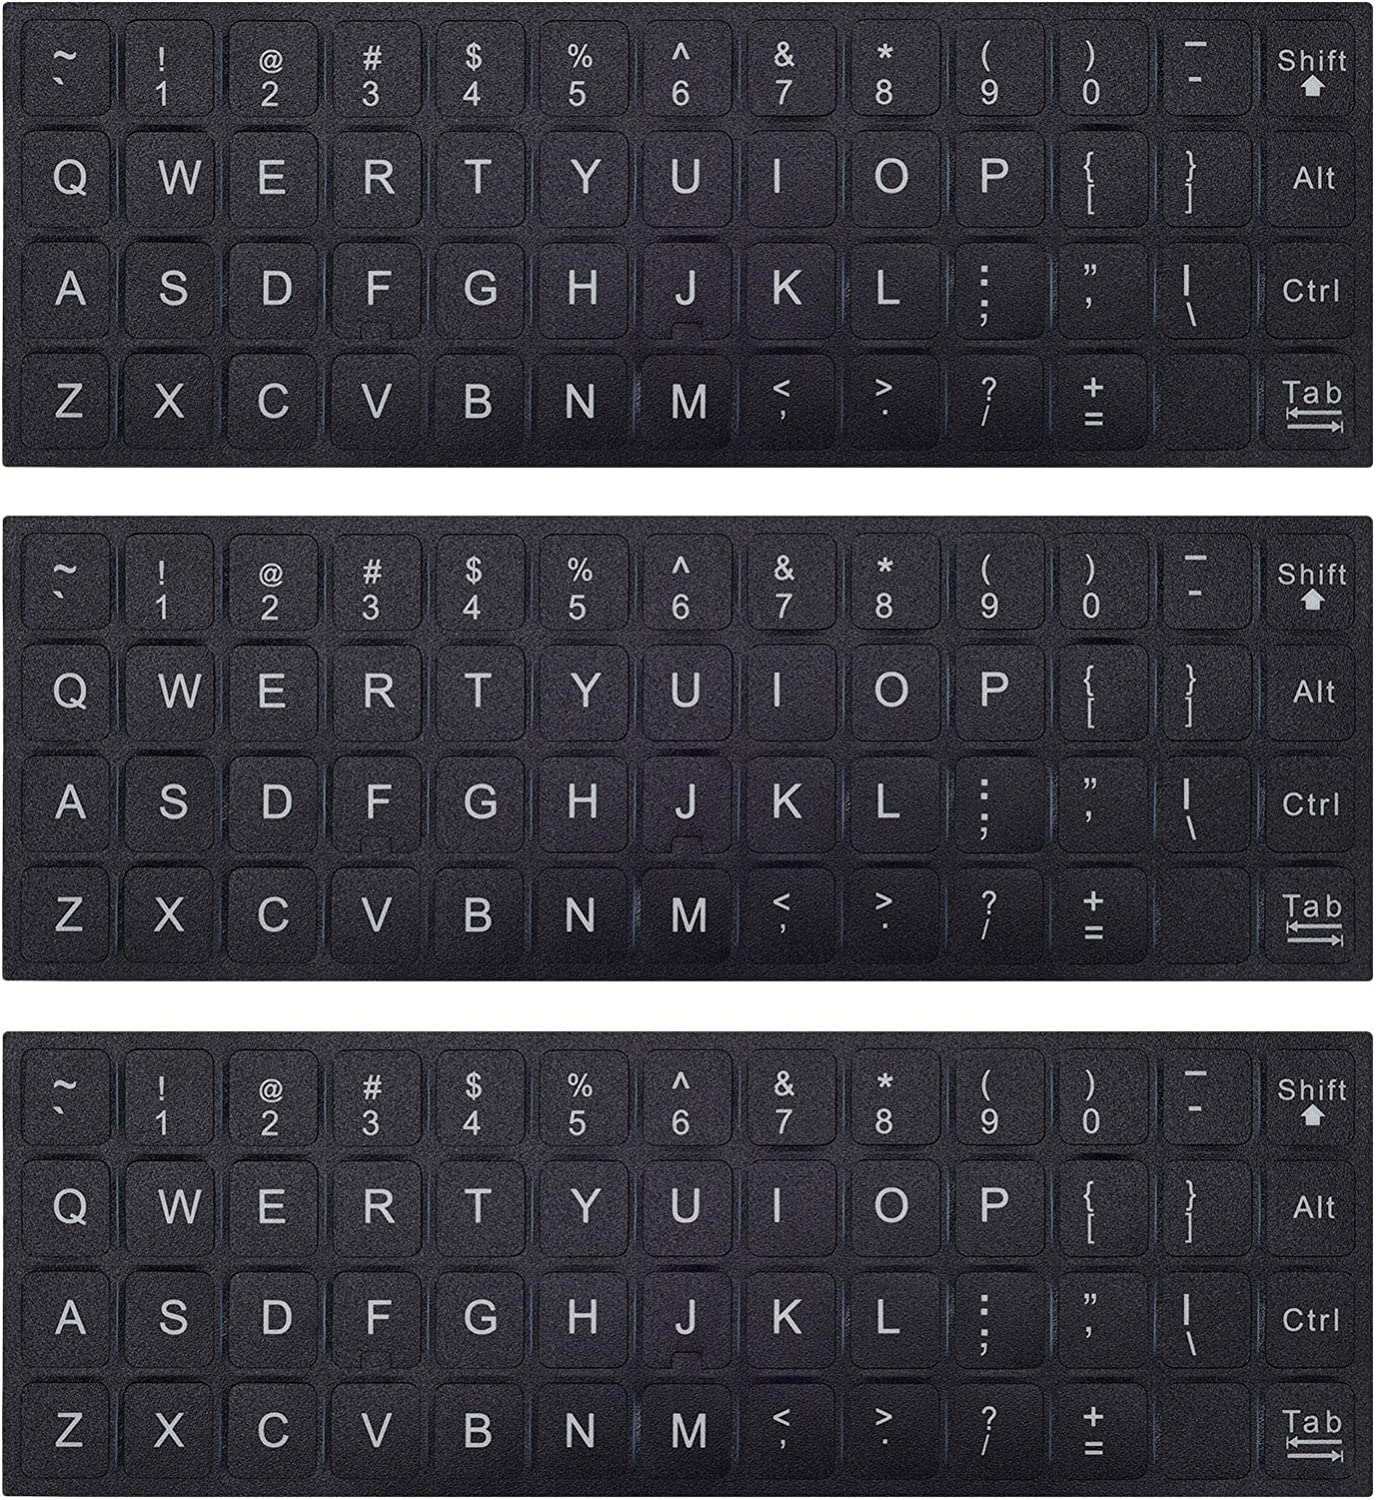 3PCS Universal English Keyboard Letter Stickers, Replacement English Keyboard Stickers with Black Background and White Lettering for PC Computer Laptop Desktop-English